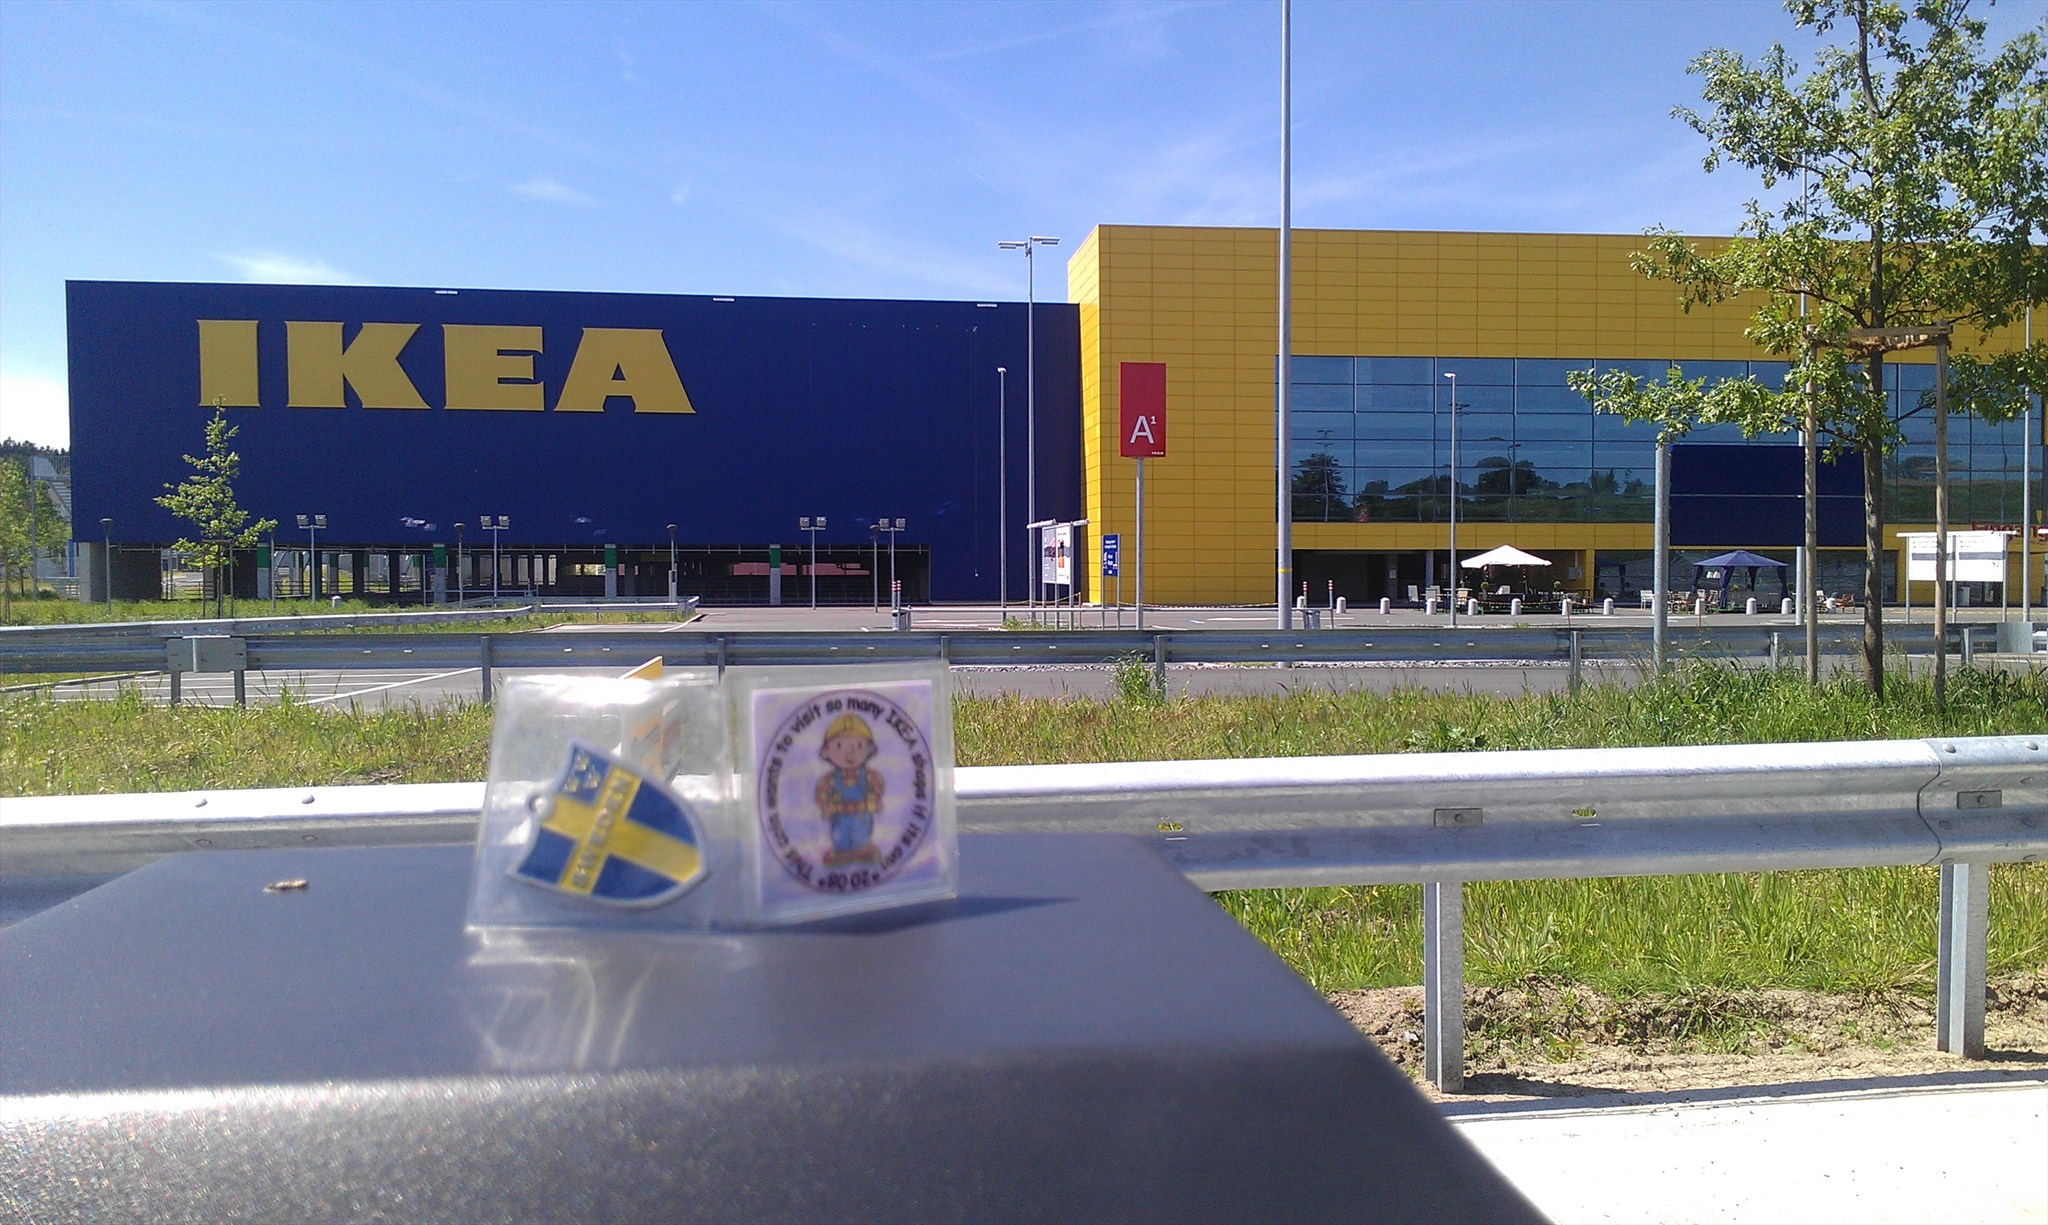 Geocaching log by cerpius for heja sverige at ikea for Ikea call center careers